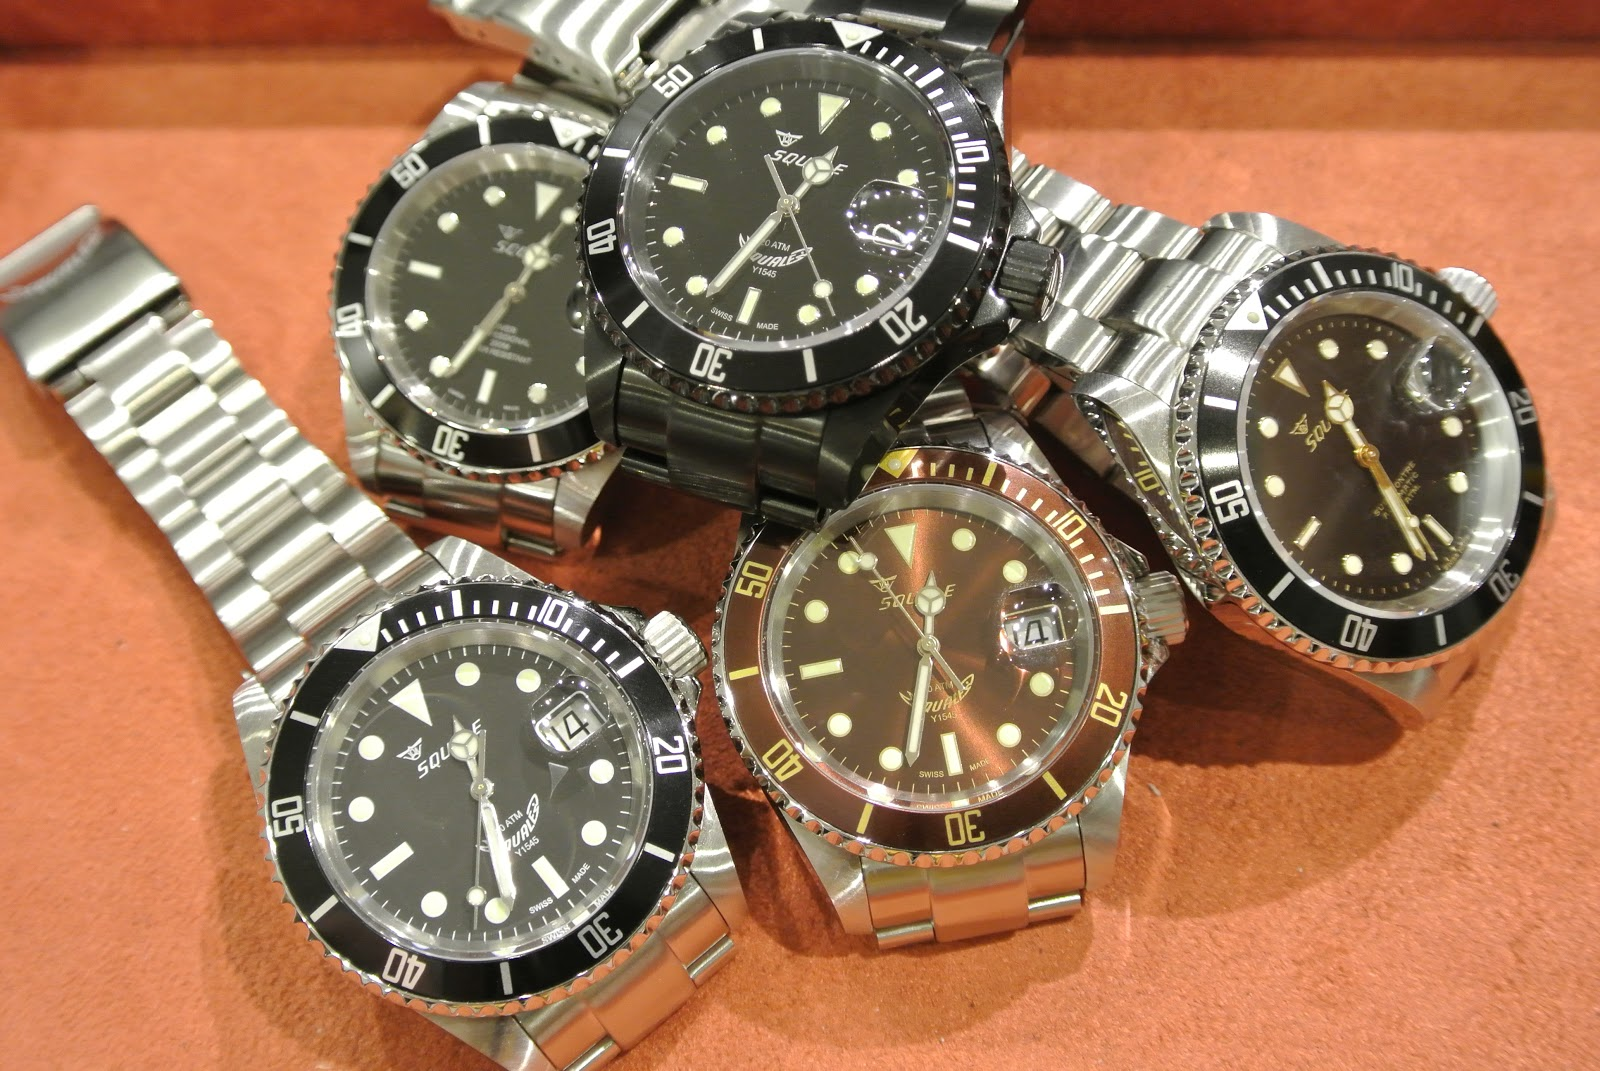 the rogue review a family reviewed the squale 20 atmos 1545